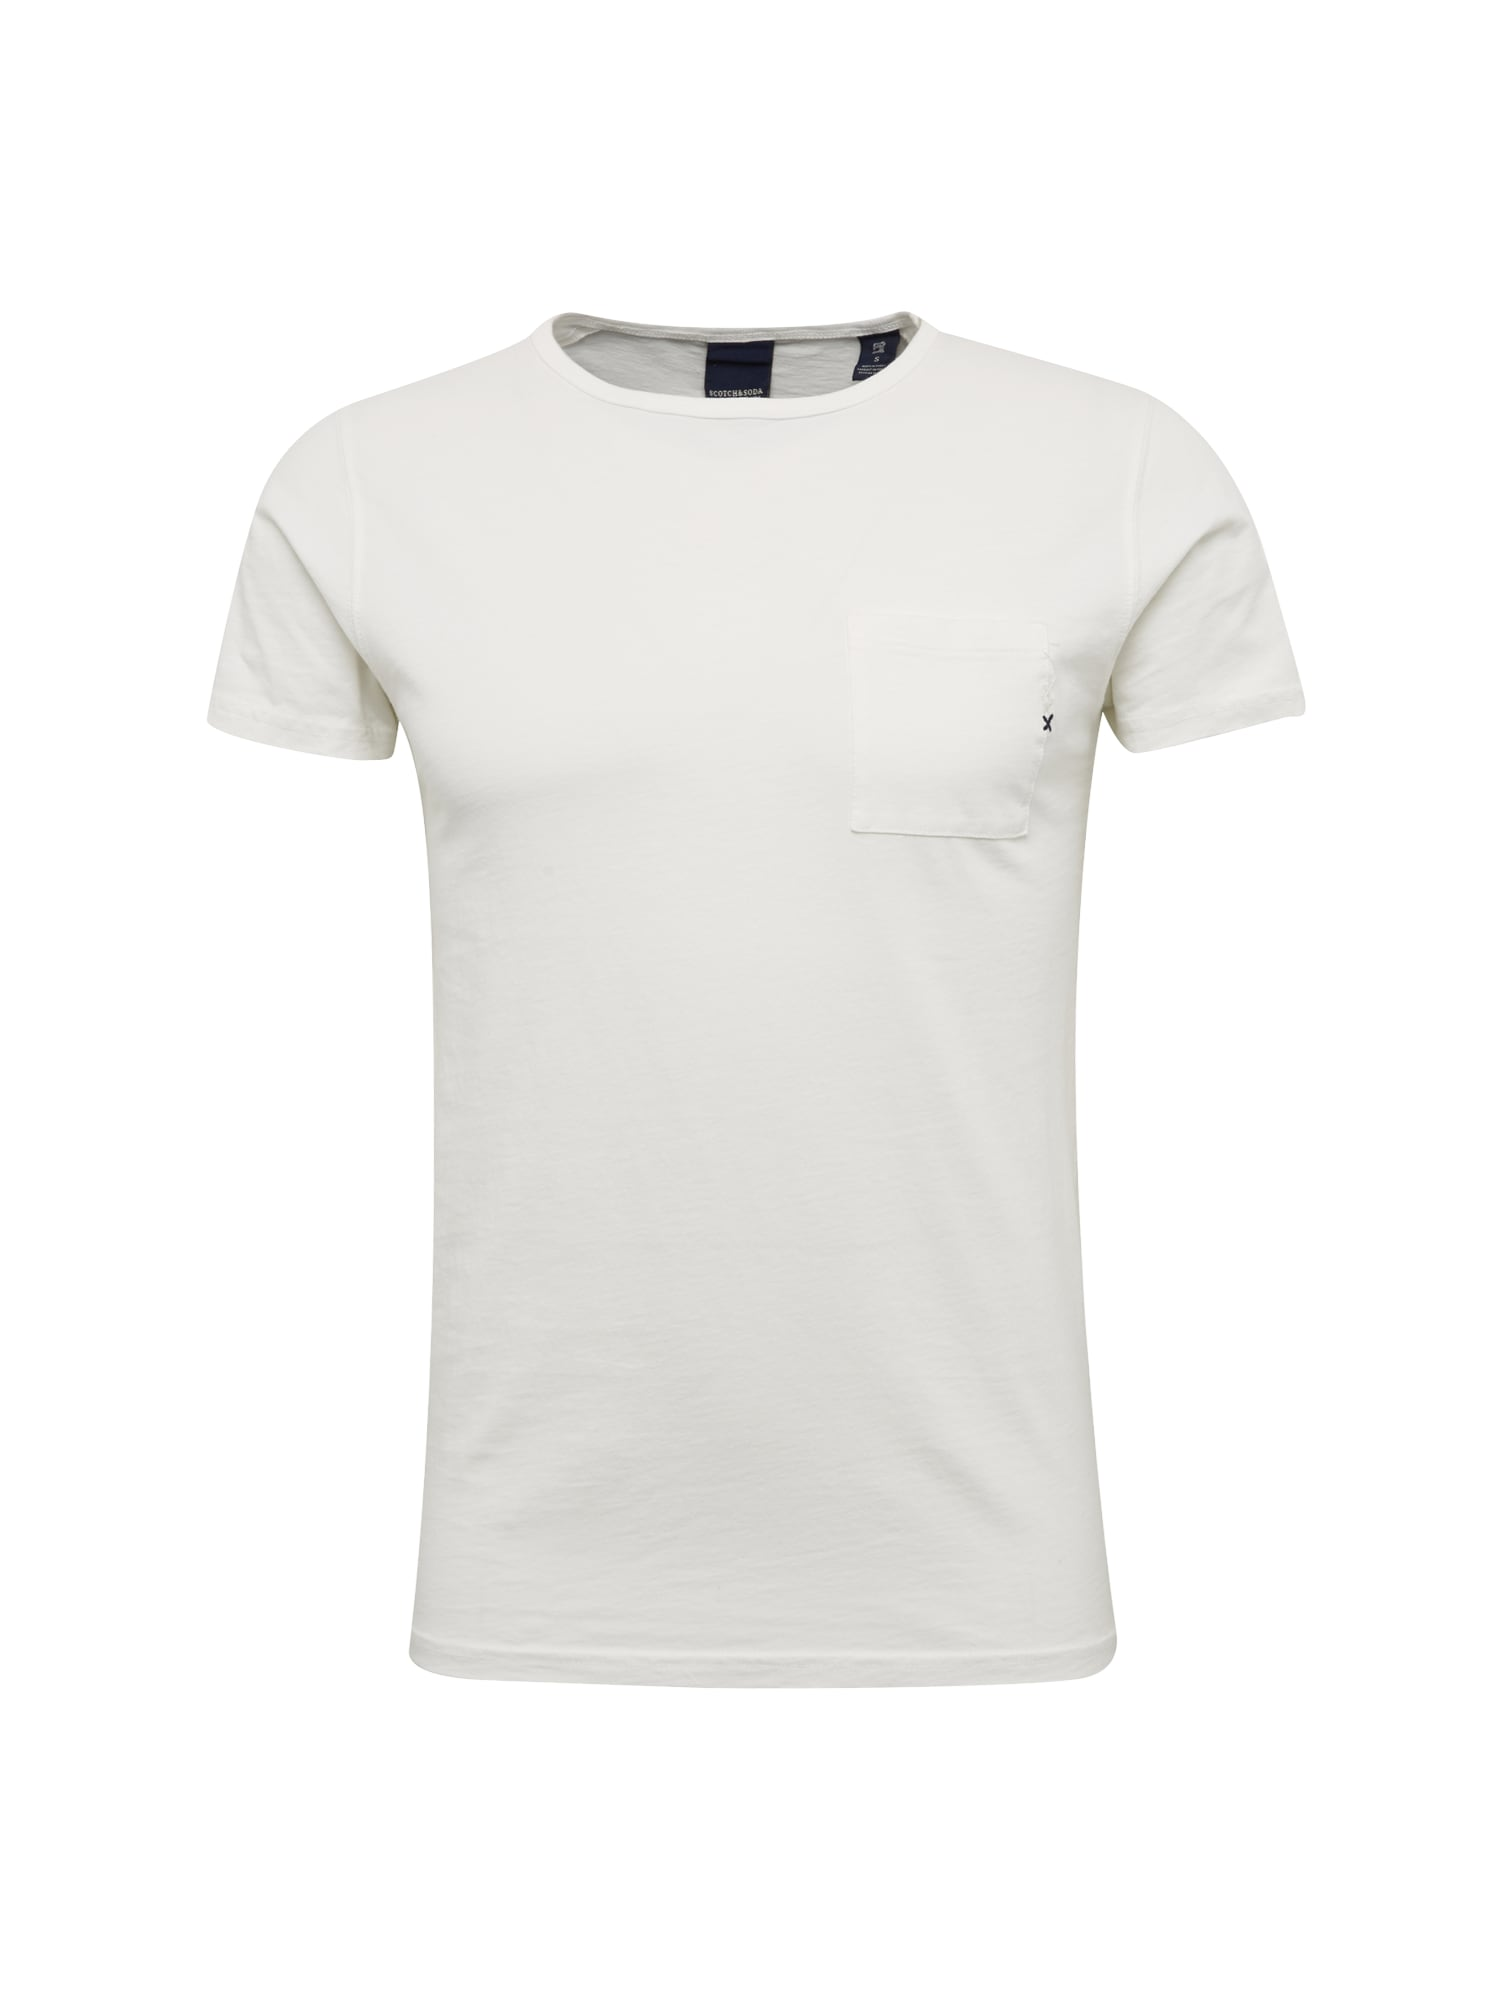 SCOTCH  and  SODA Heren Shirt Ams Blauw 1 pocket tee in seasonal colours wit